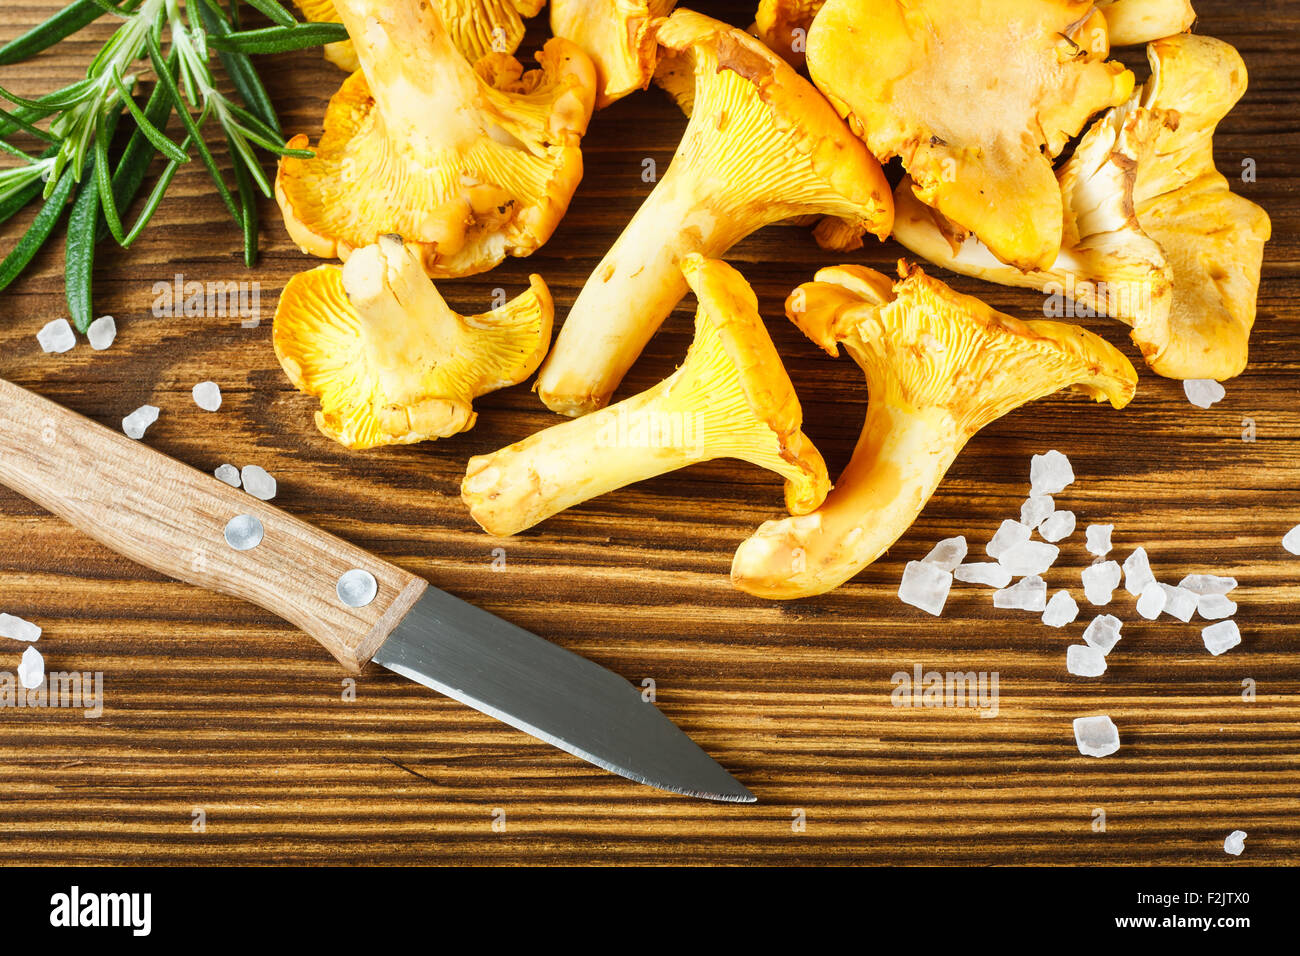 Chanterelles jaunes sur table en bois Photo Stock